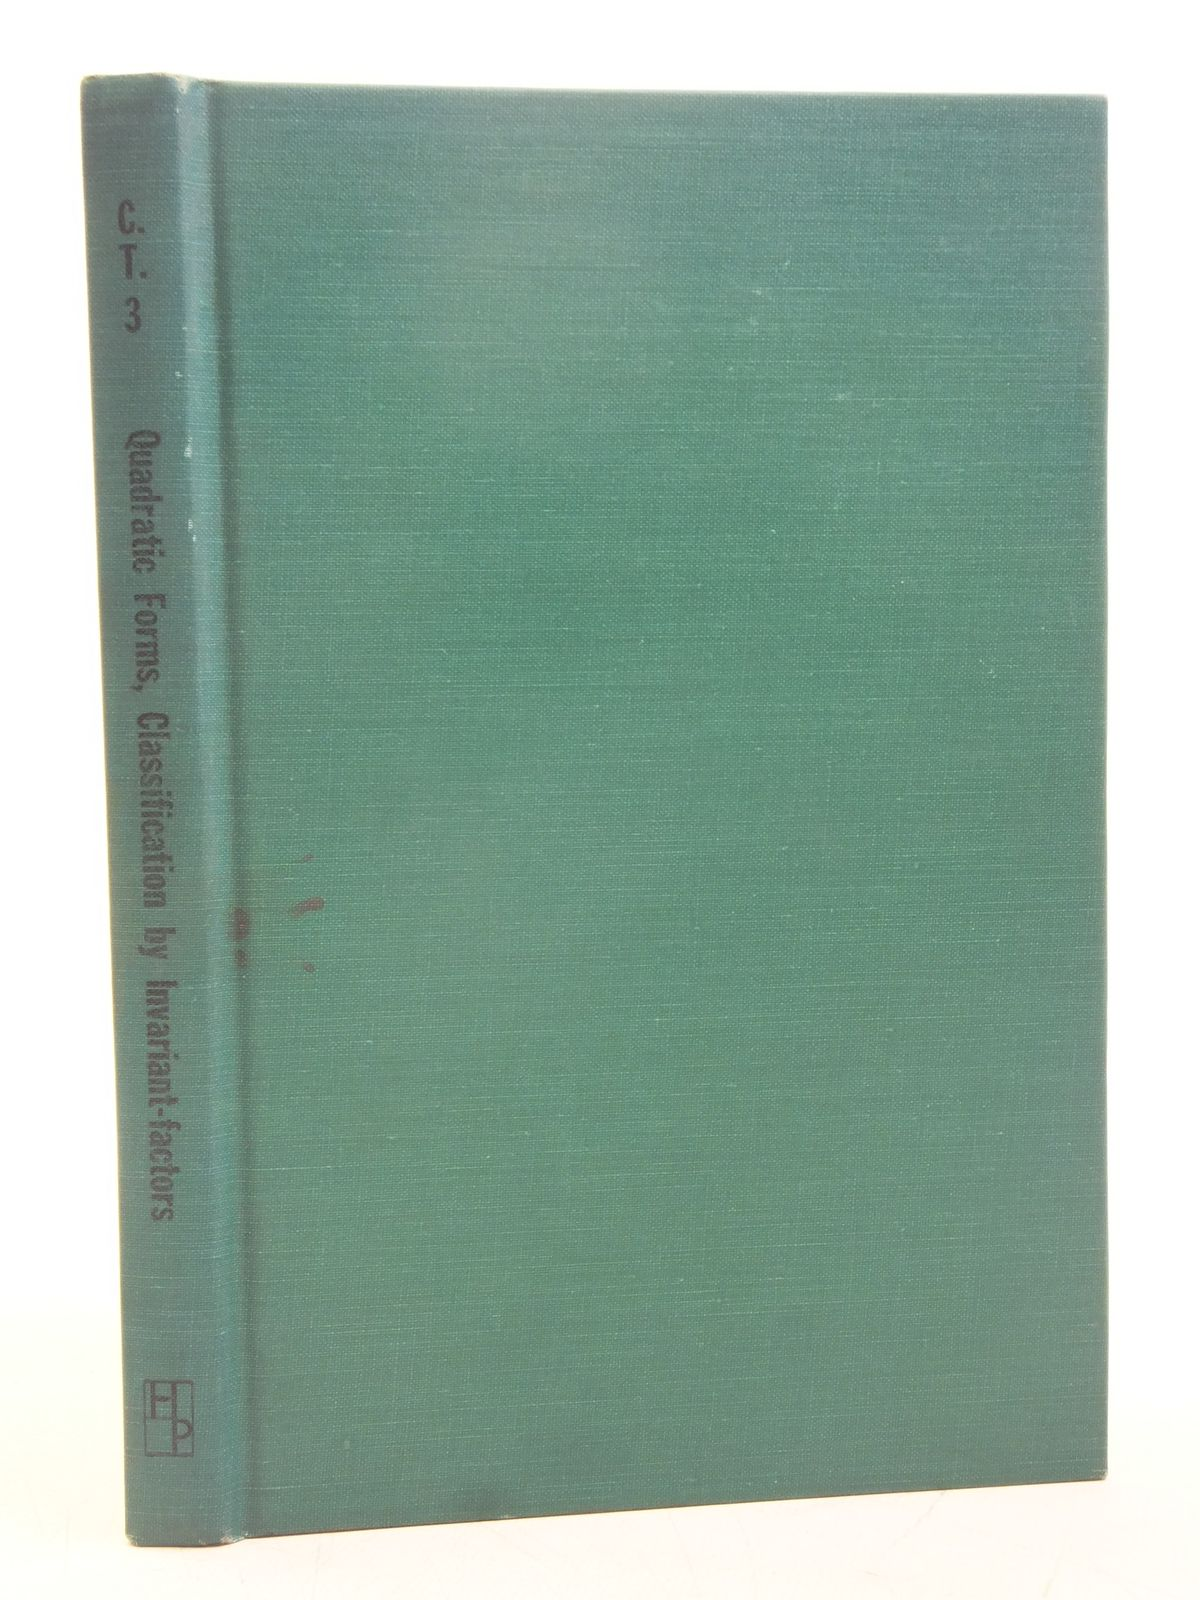 Photo of QUADRATIC FORMS AND THEIR CLASSIFICATION BY MEANS OF INVARIANT-FACTORS written by Bromwich, T.J. I'A published by Hafner Publishing Company (STOCK CODE: 1607640)  for sale by Stella & Rose's Books